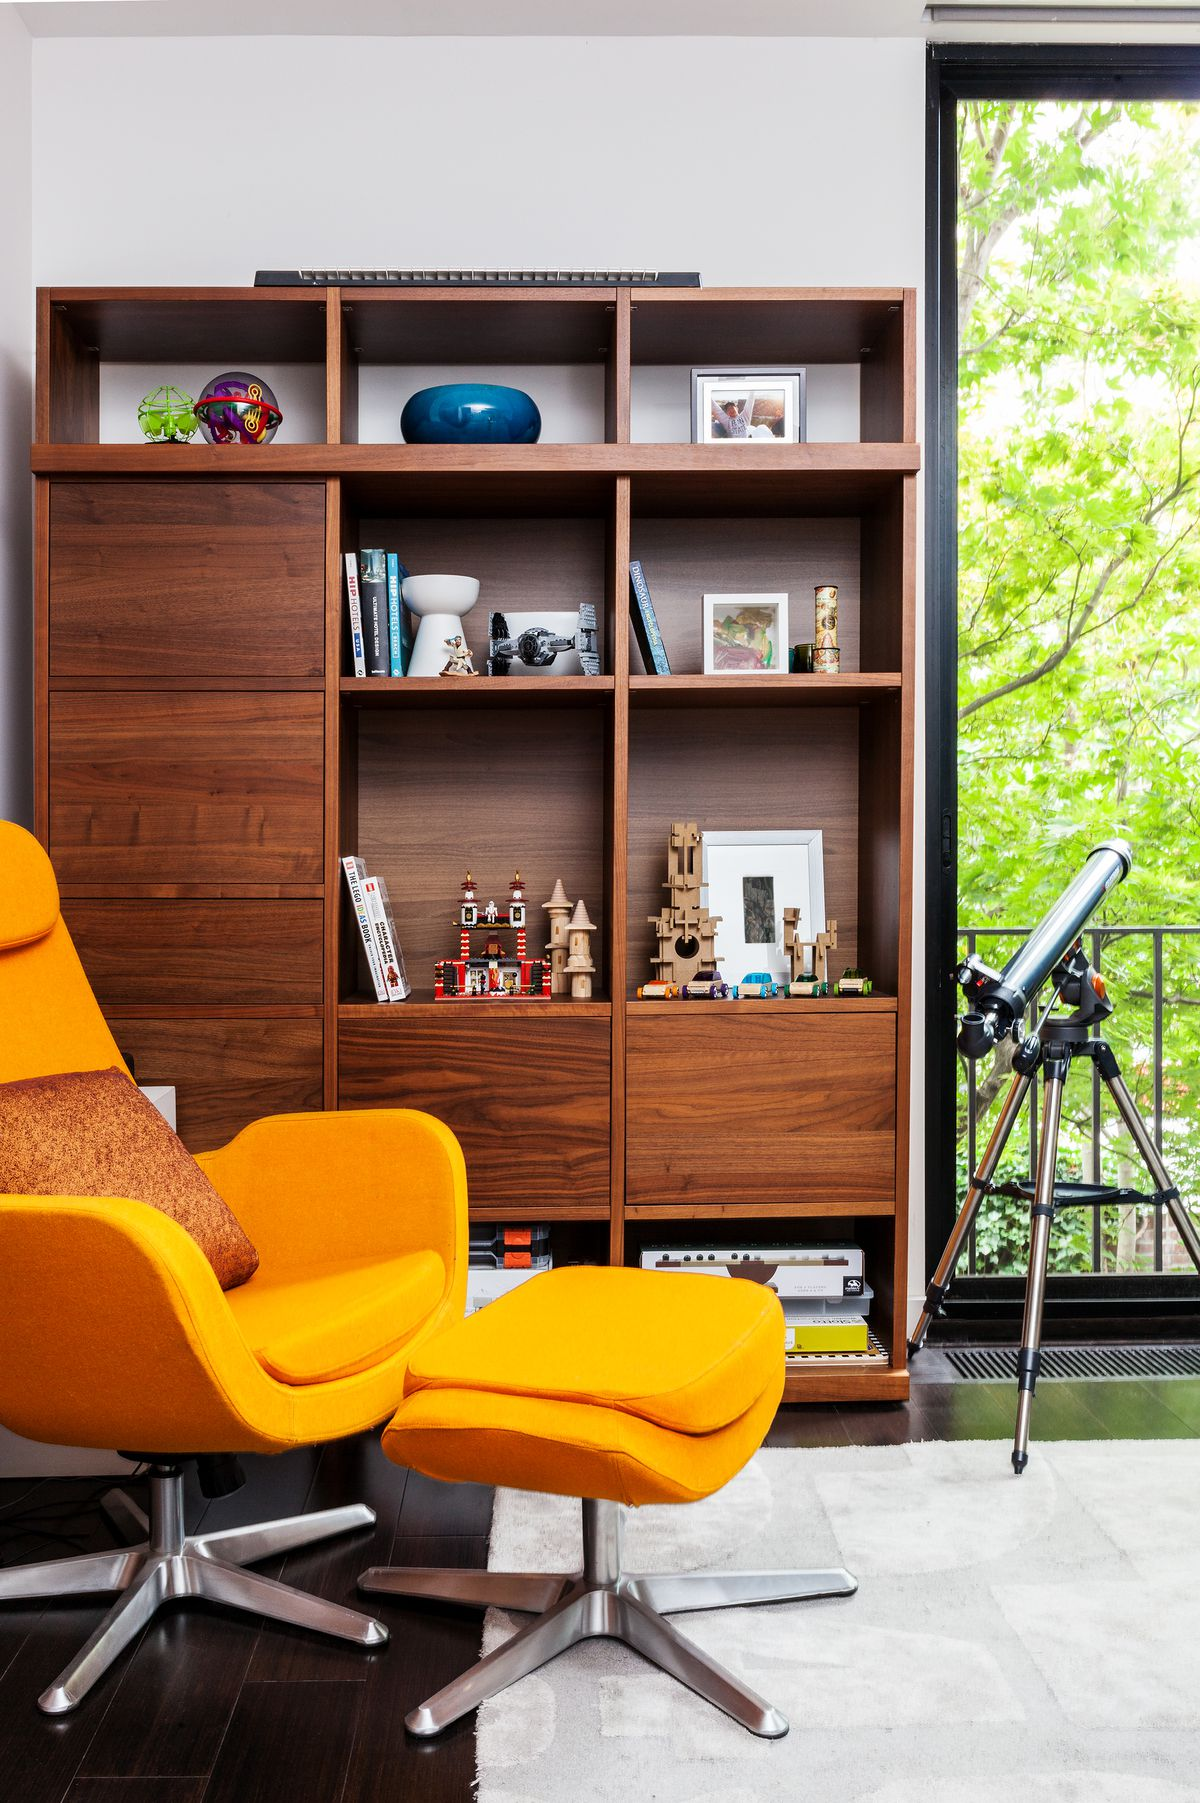 A bright orange armchair sits in front of a walnut shelf.